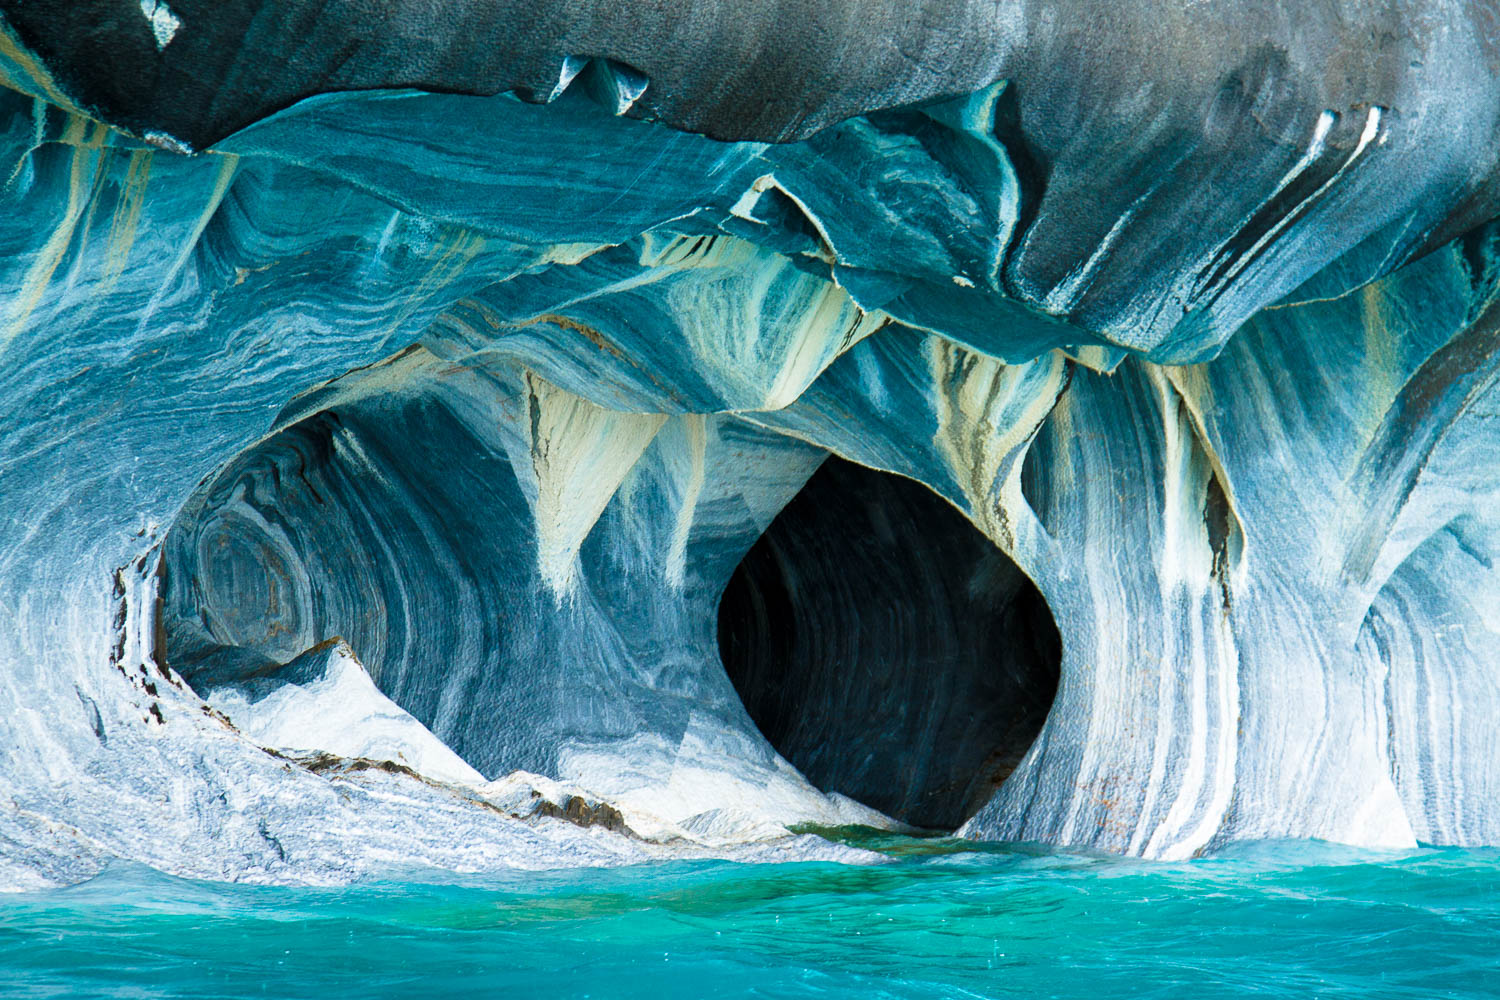 Marble caves, Rio Tranquilo